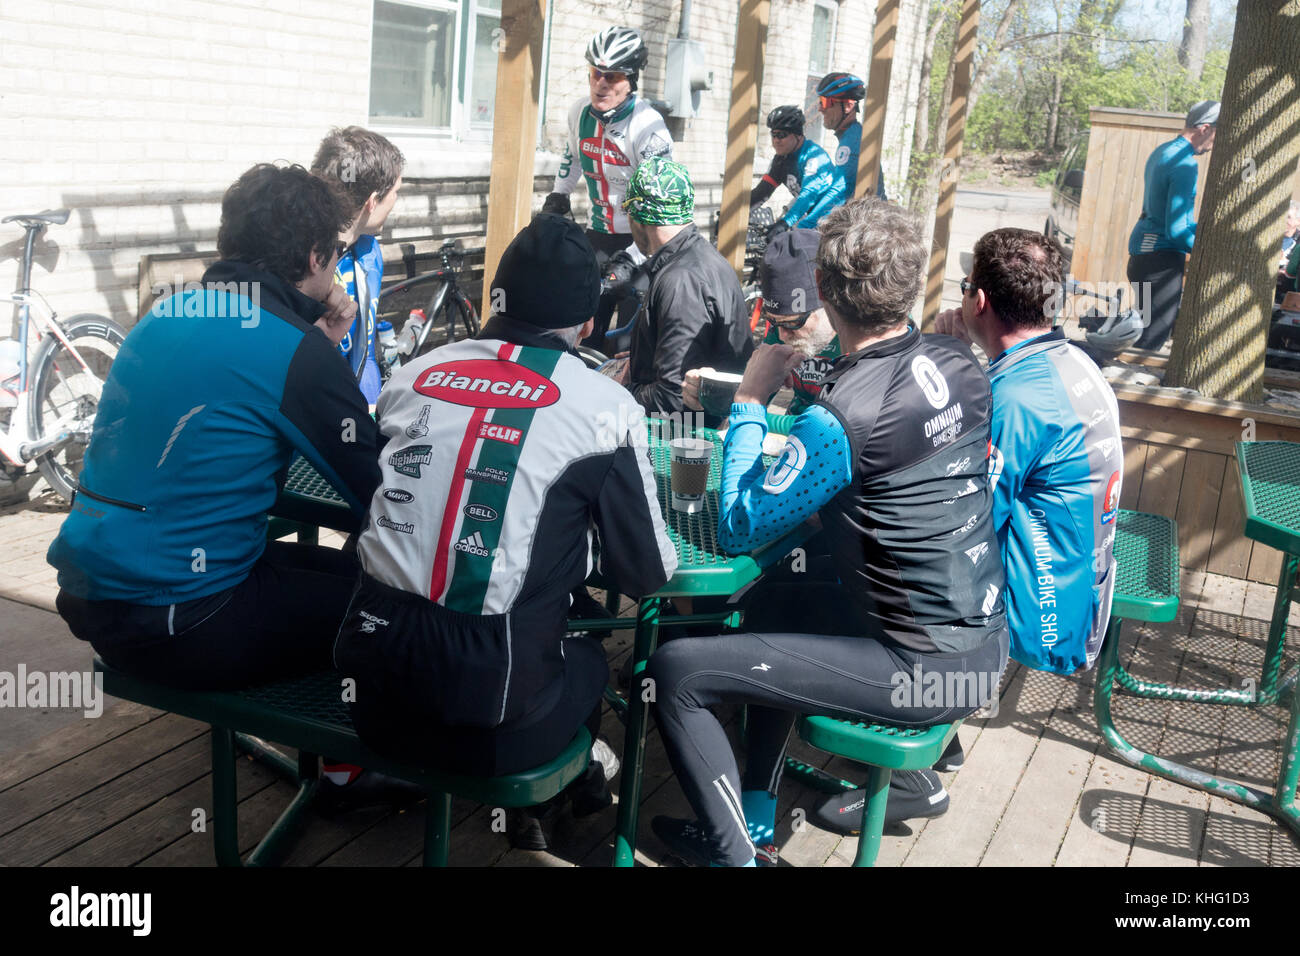 Group of men bicyclists taking a break in the Dunn Brother's Coffee Shop outdoor patio for a cup and conversation. - Stock Image